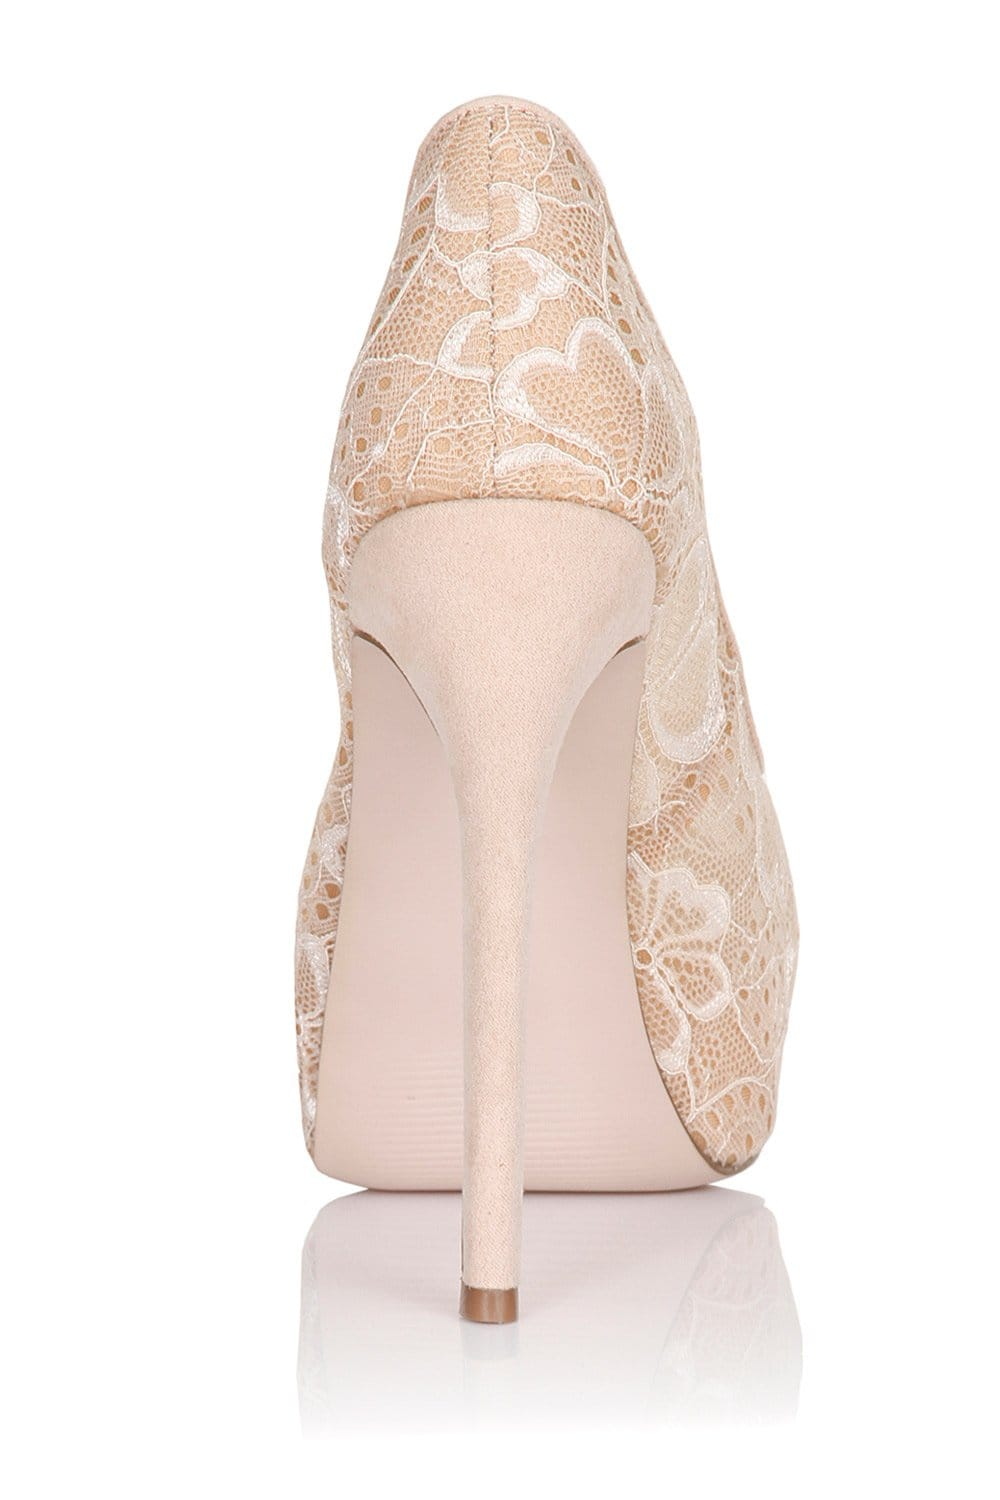 Find great deals on eBay for nude lace shoes. Shop with confidence.